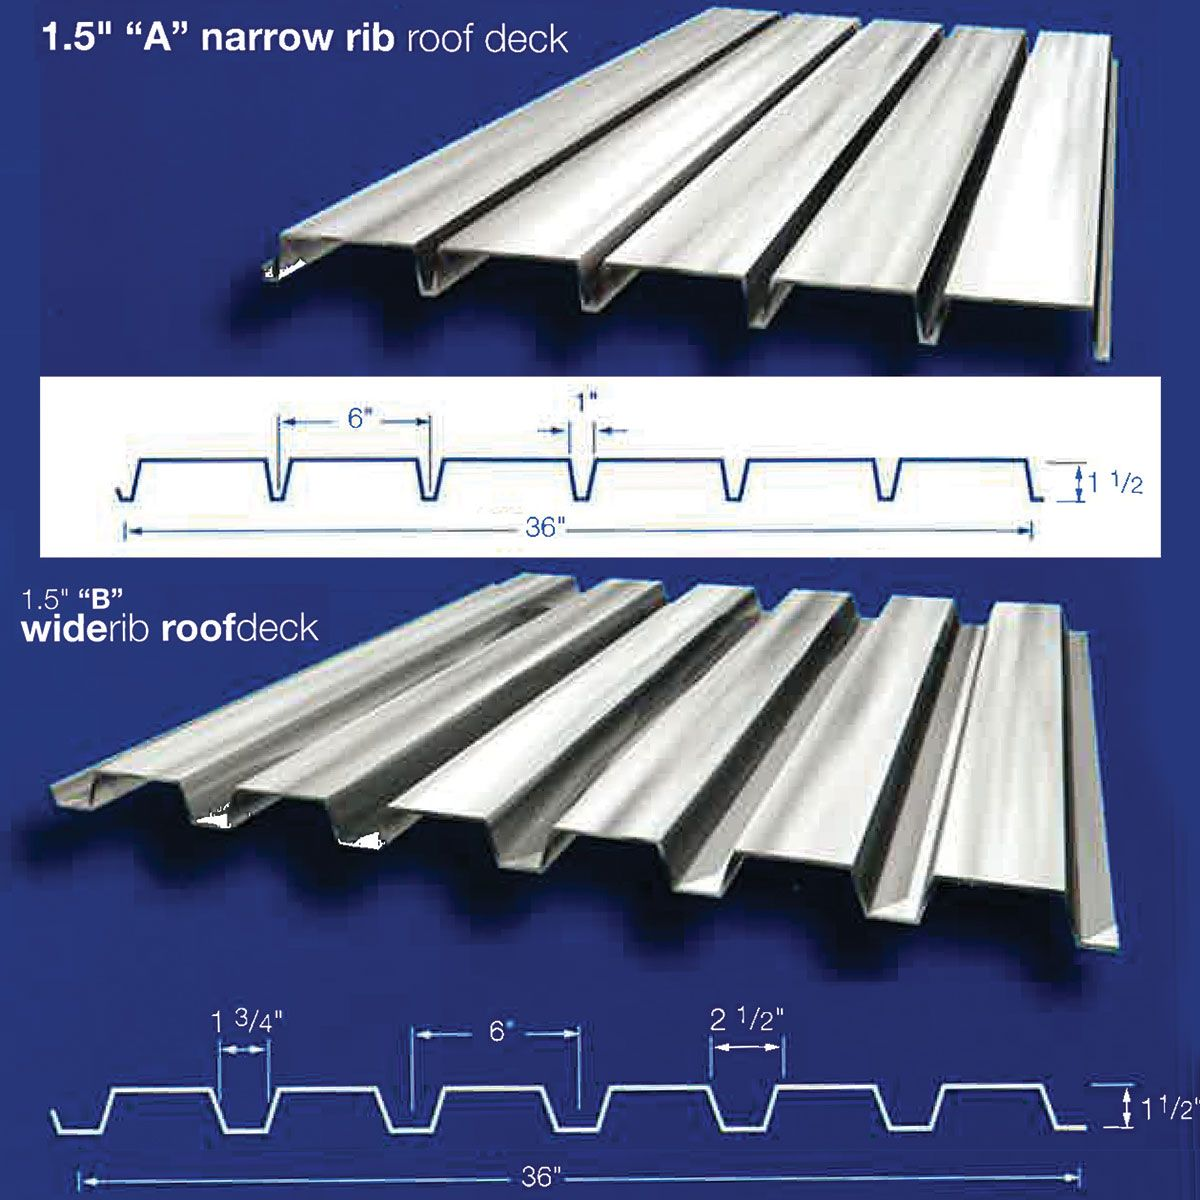 Steel Roof Decking Narrow And Wide Rib Roof Deck Deck Under Deck Roofing